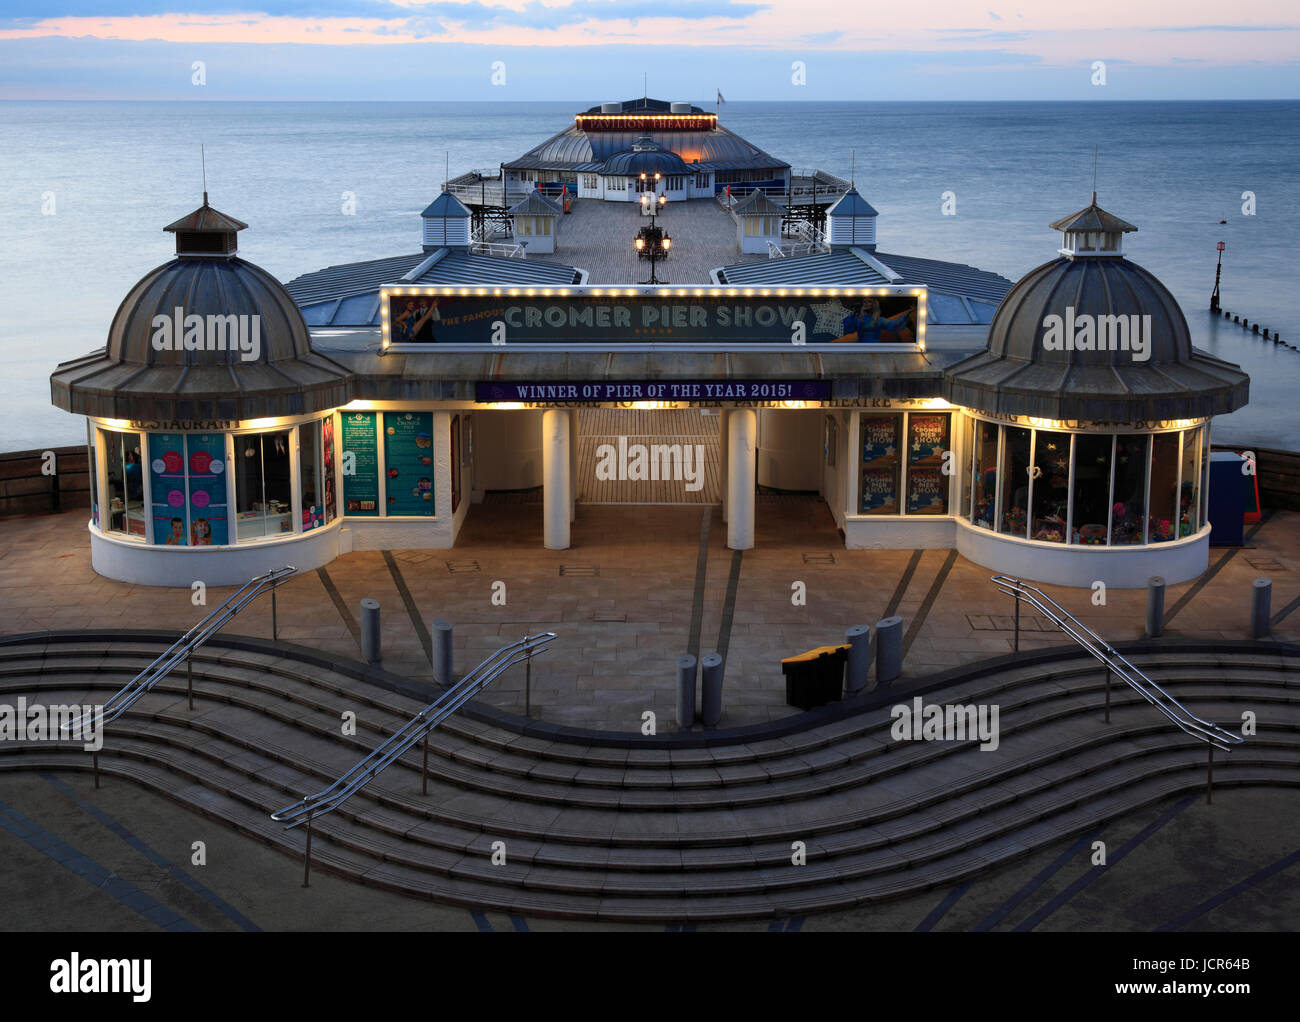 Der traditionelle Pier am Cromer, North Norfolk, England, Europa Stockbild